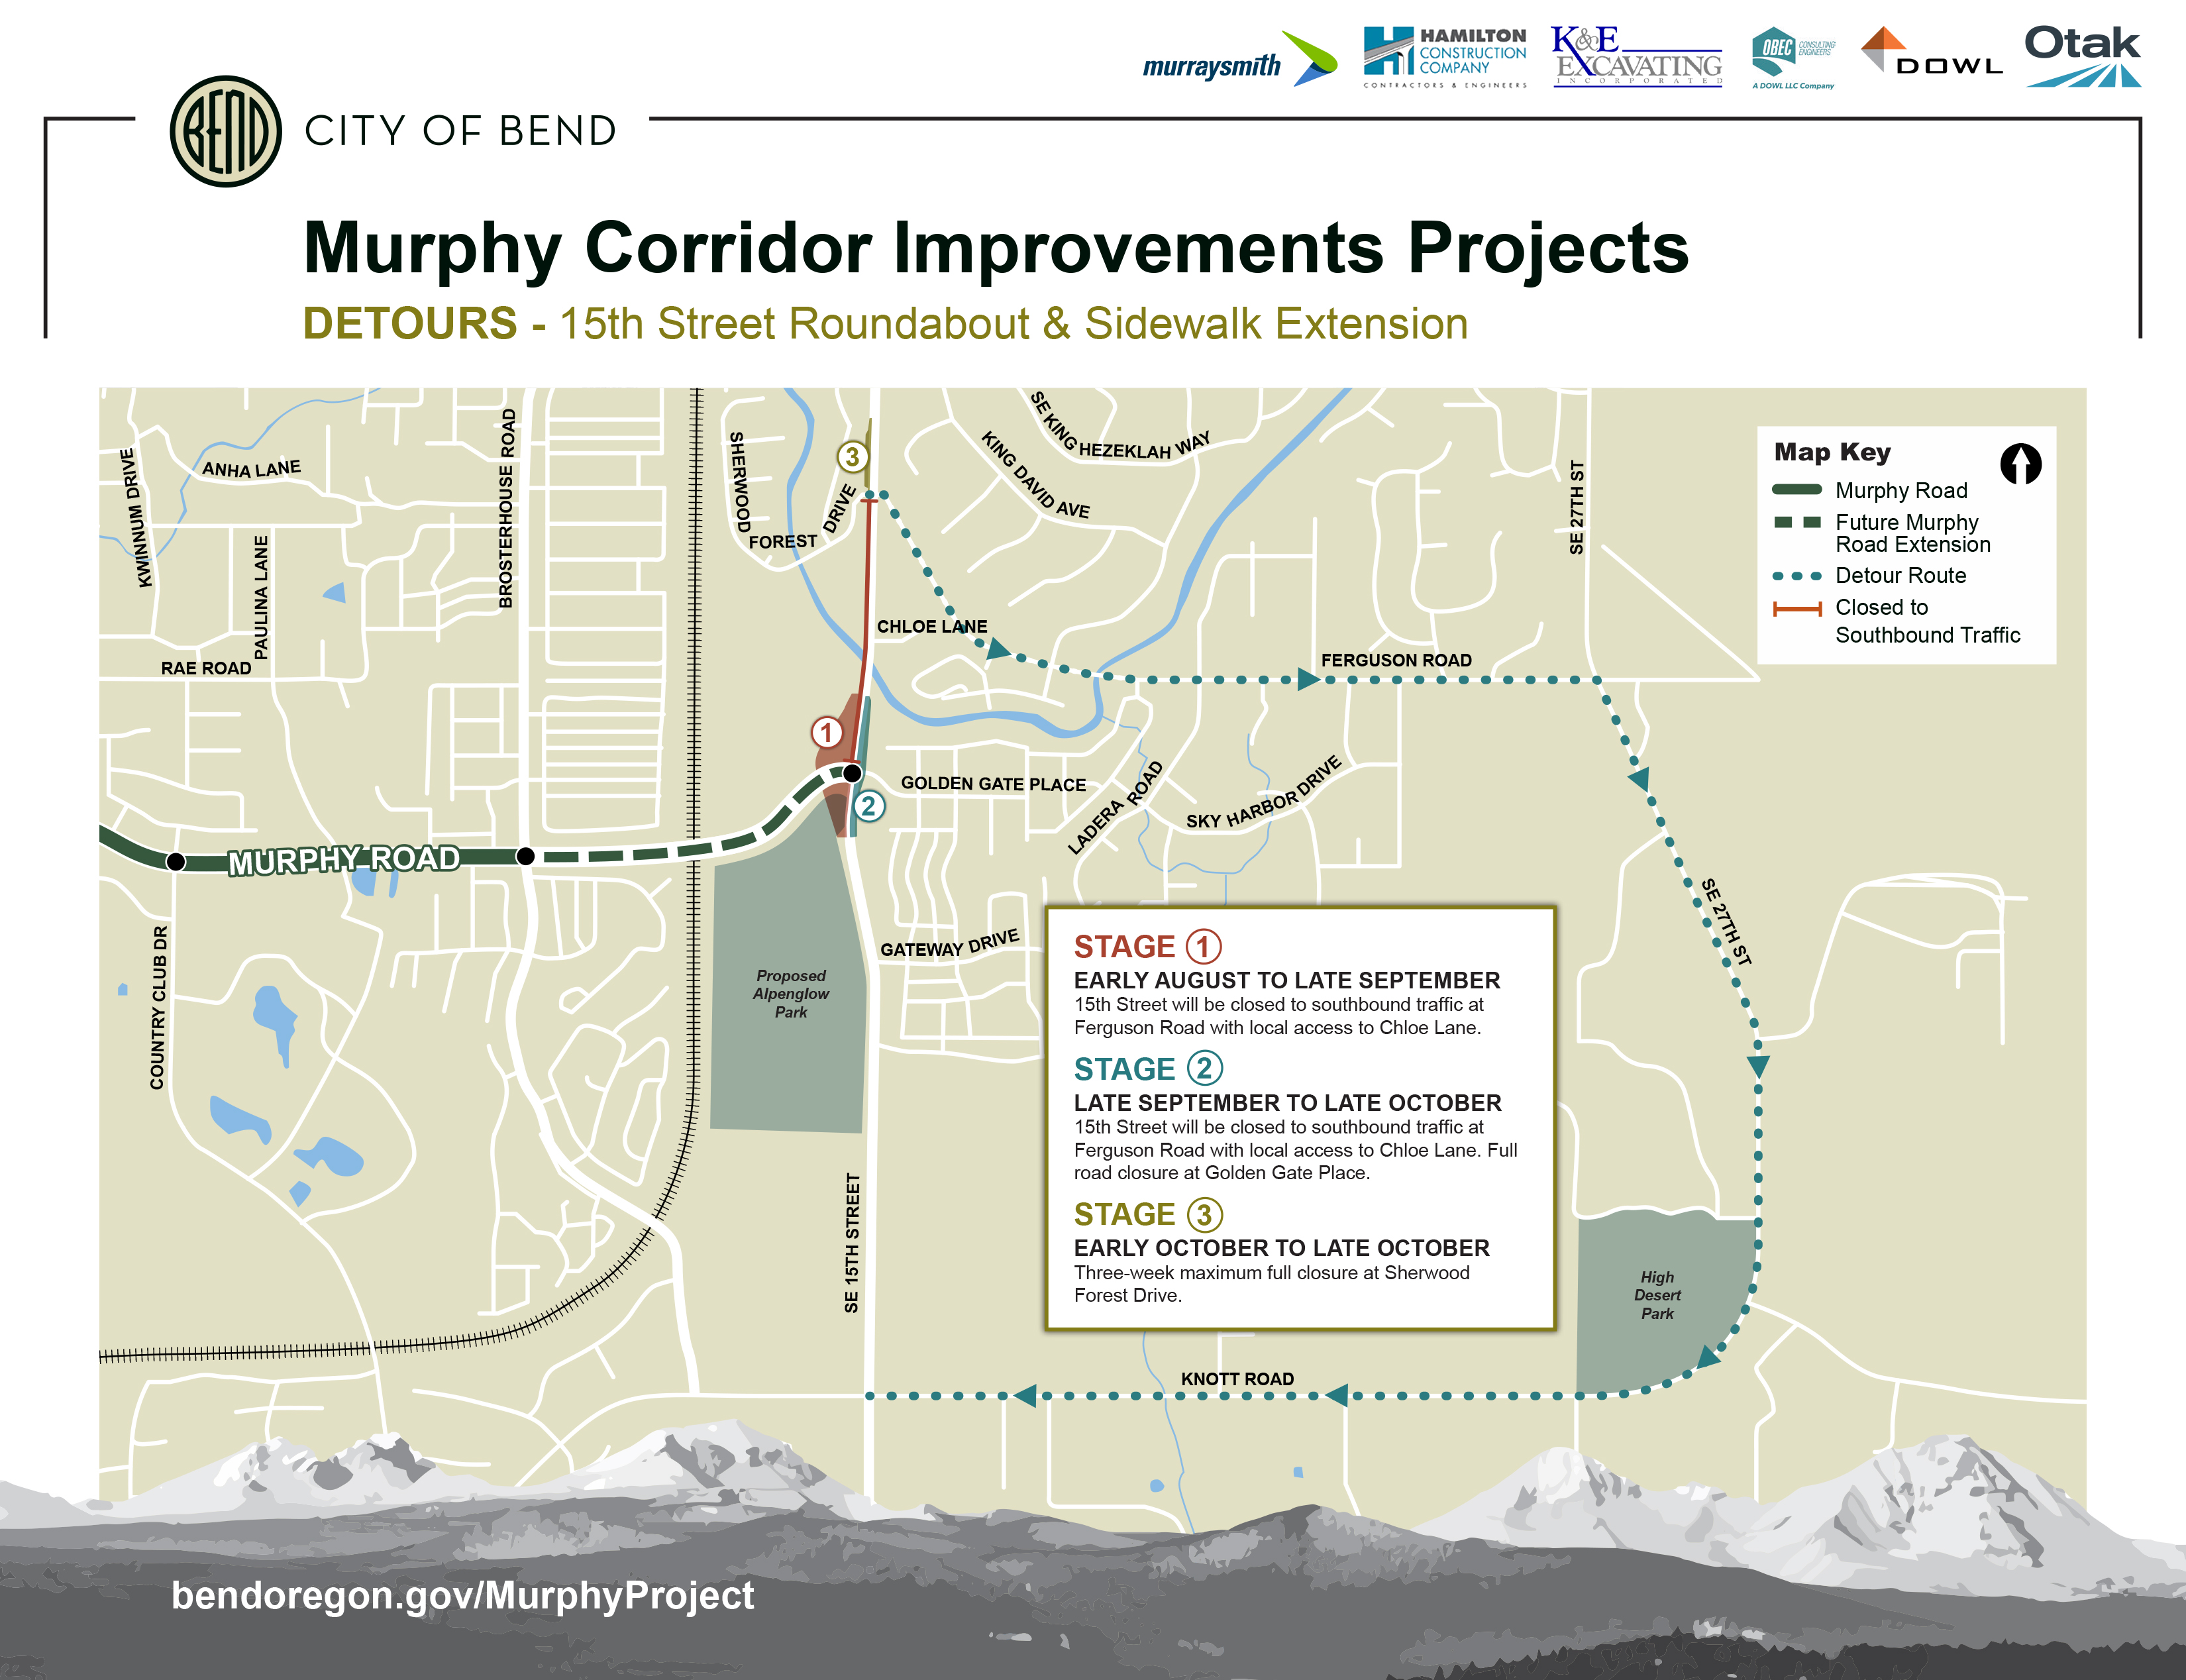 Partial Road Closures for 15th Street & Murphy